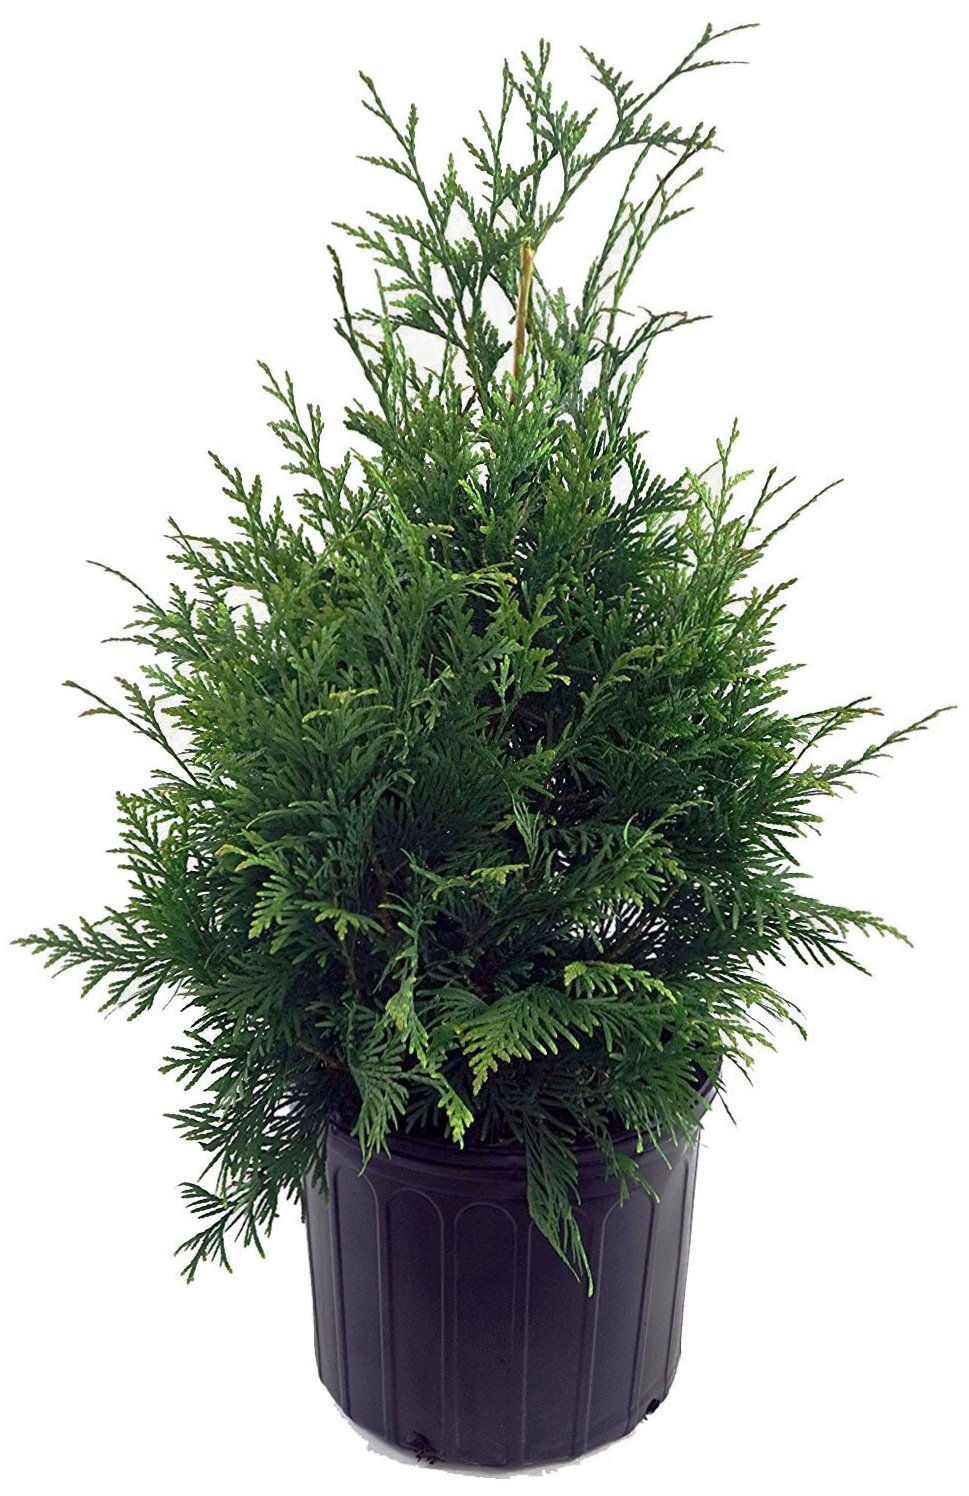 Thuja X 'Green Giant' (Western Arborvitae) Evergreen, 3 - Size Container